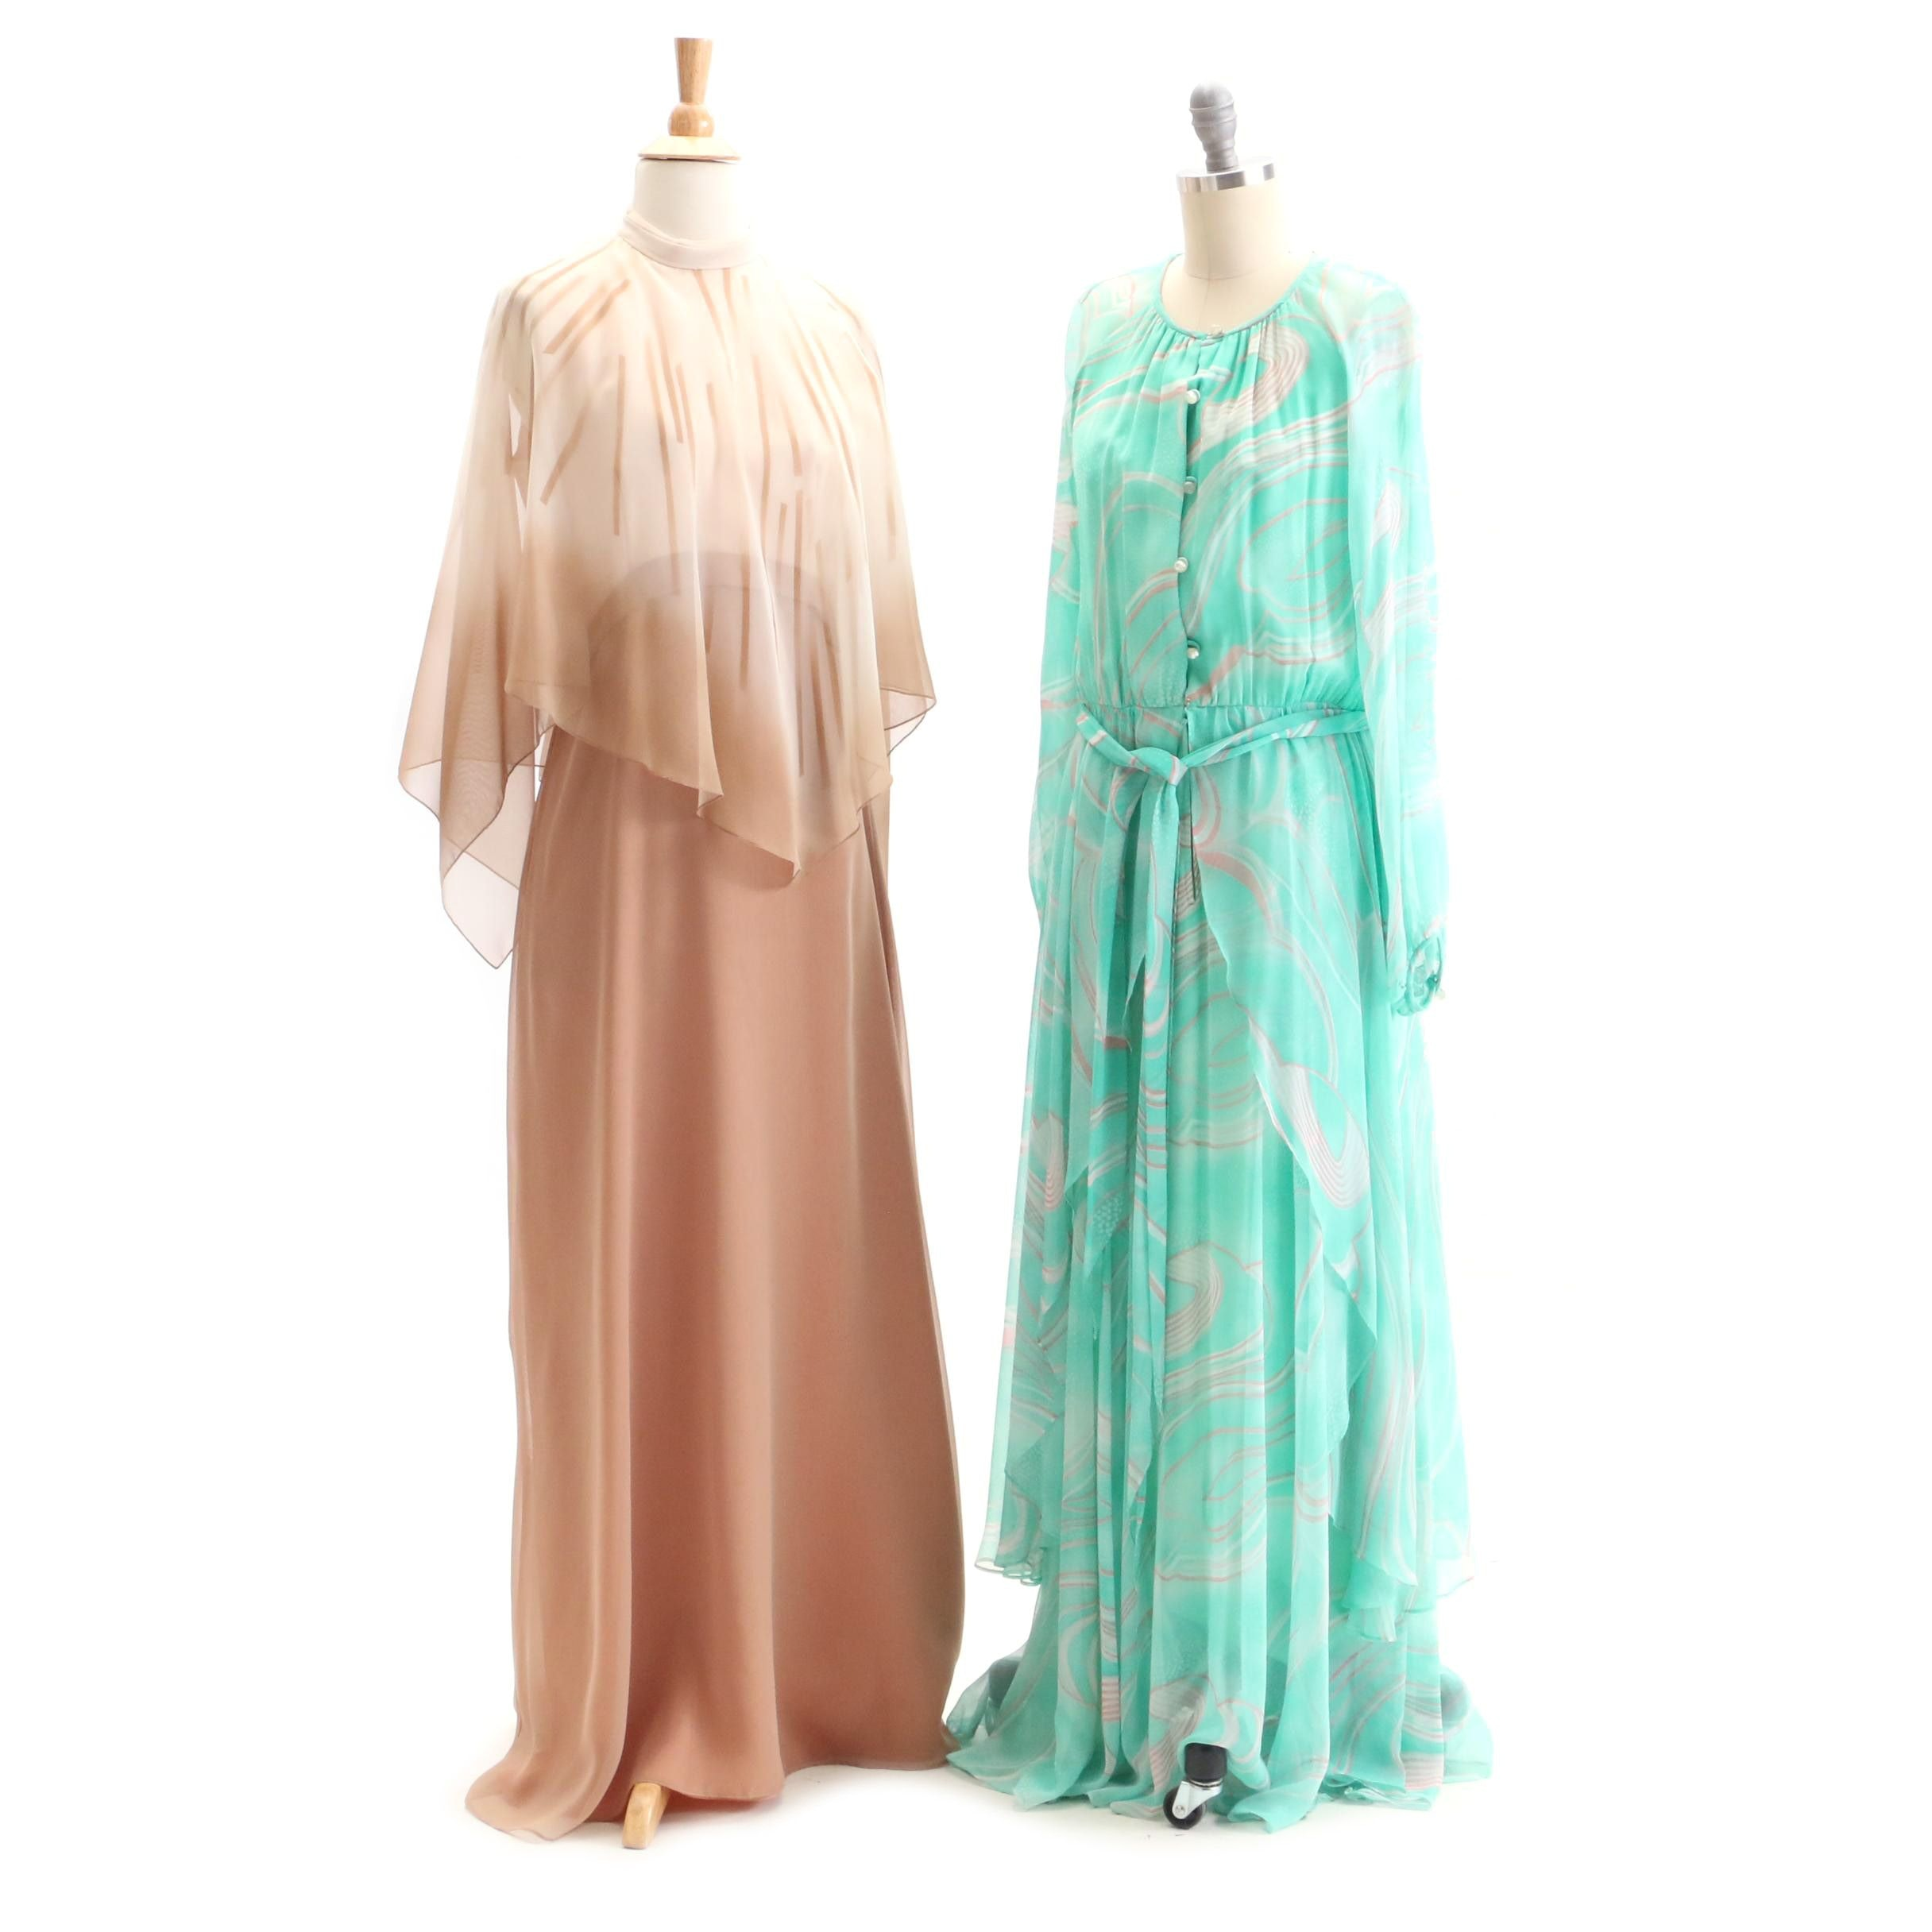 Circa 1970s Vintage Elgin Dress and A.J. Bari Maxi Dresses